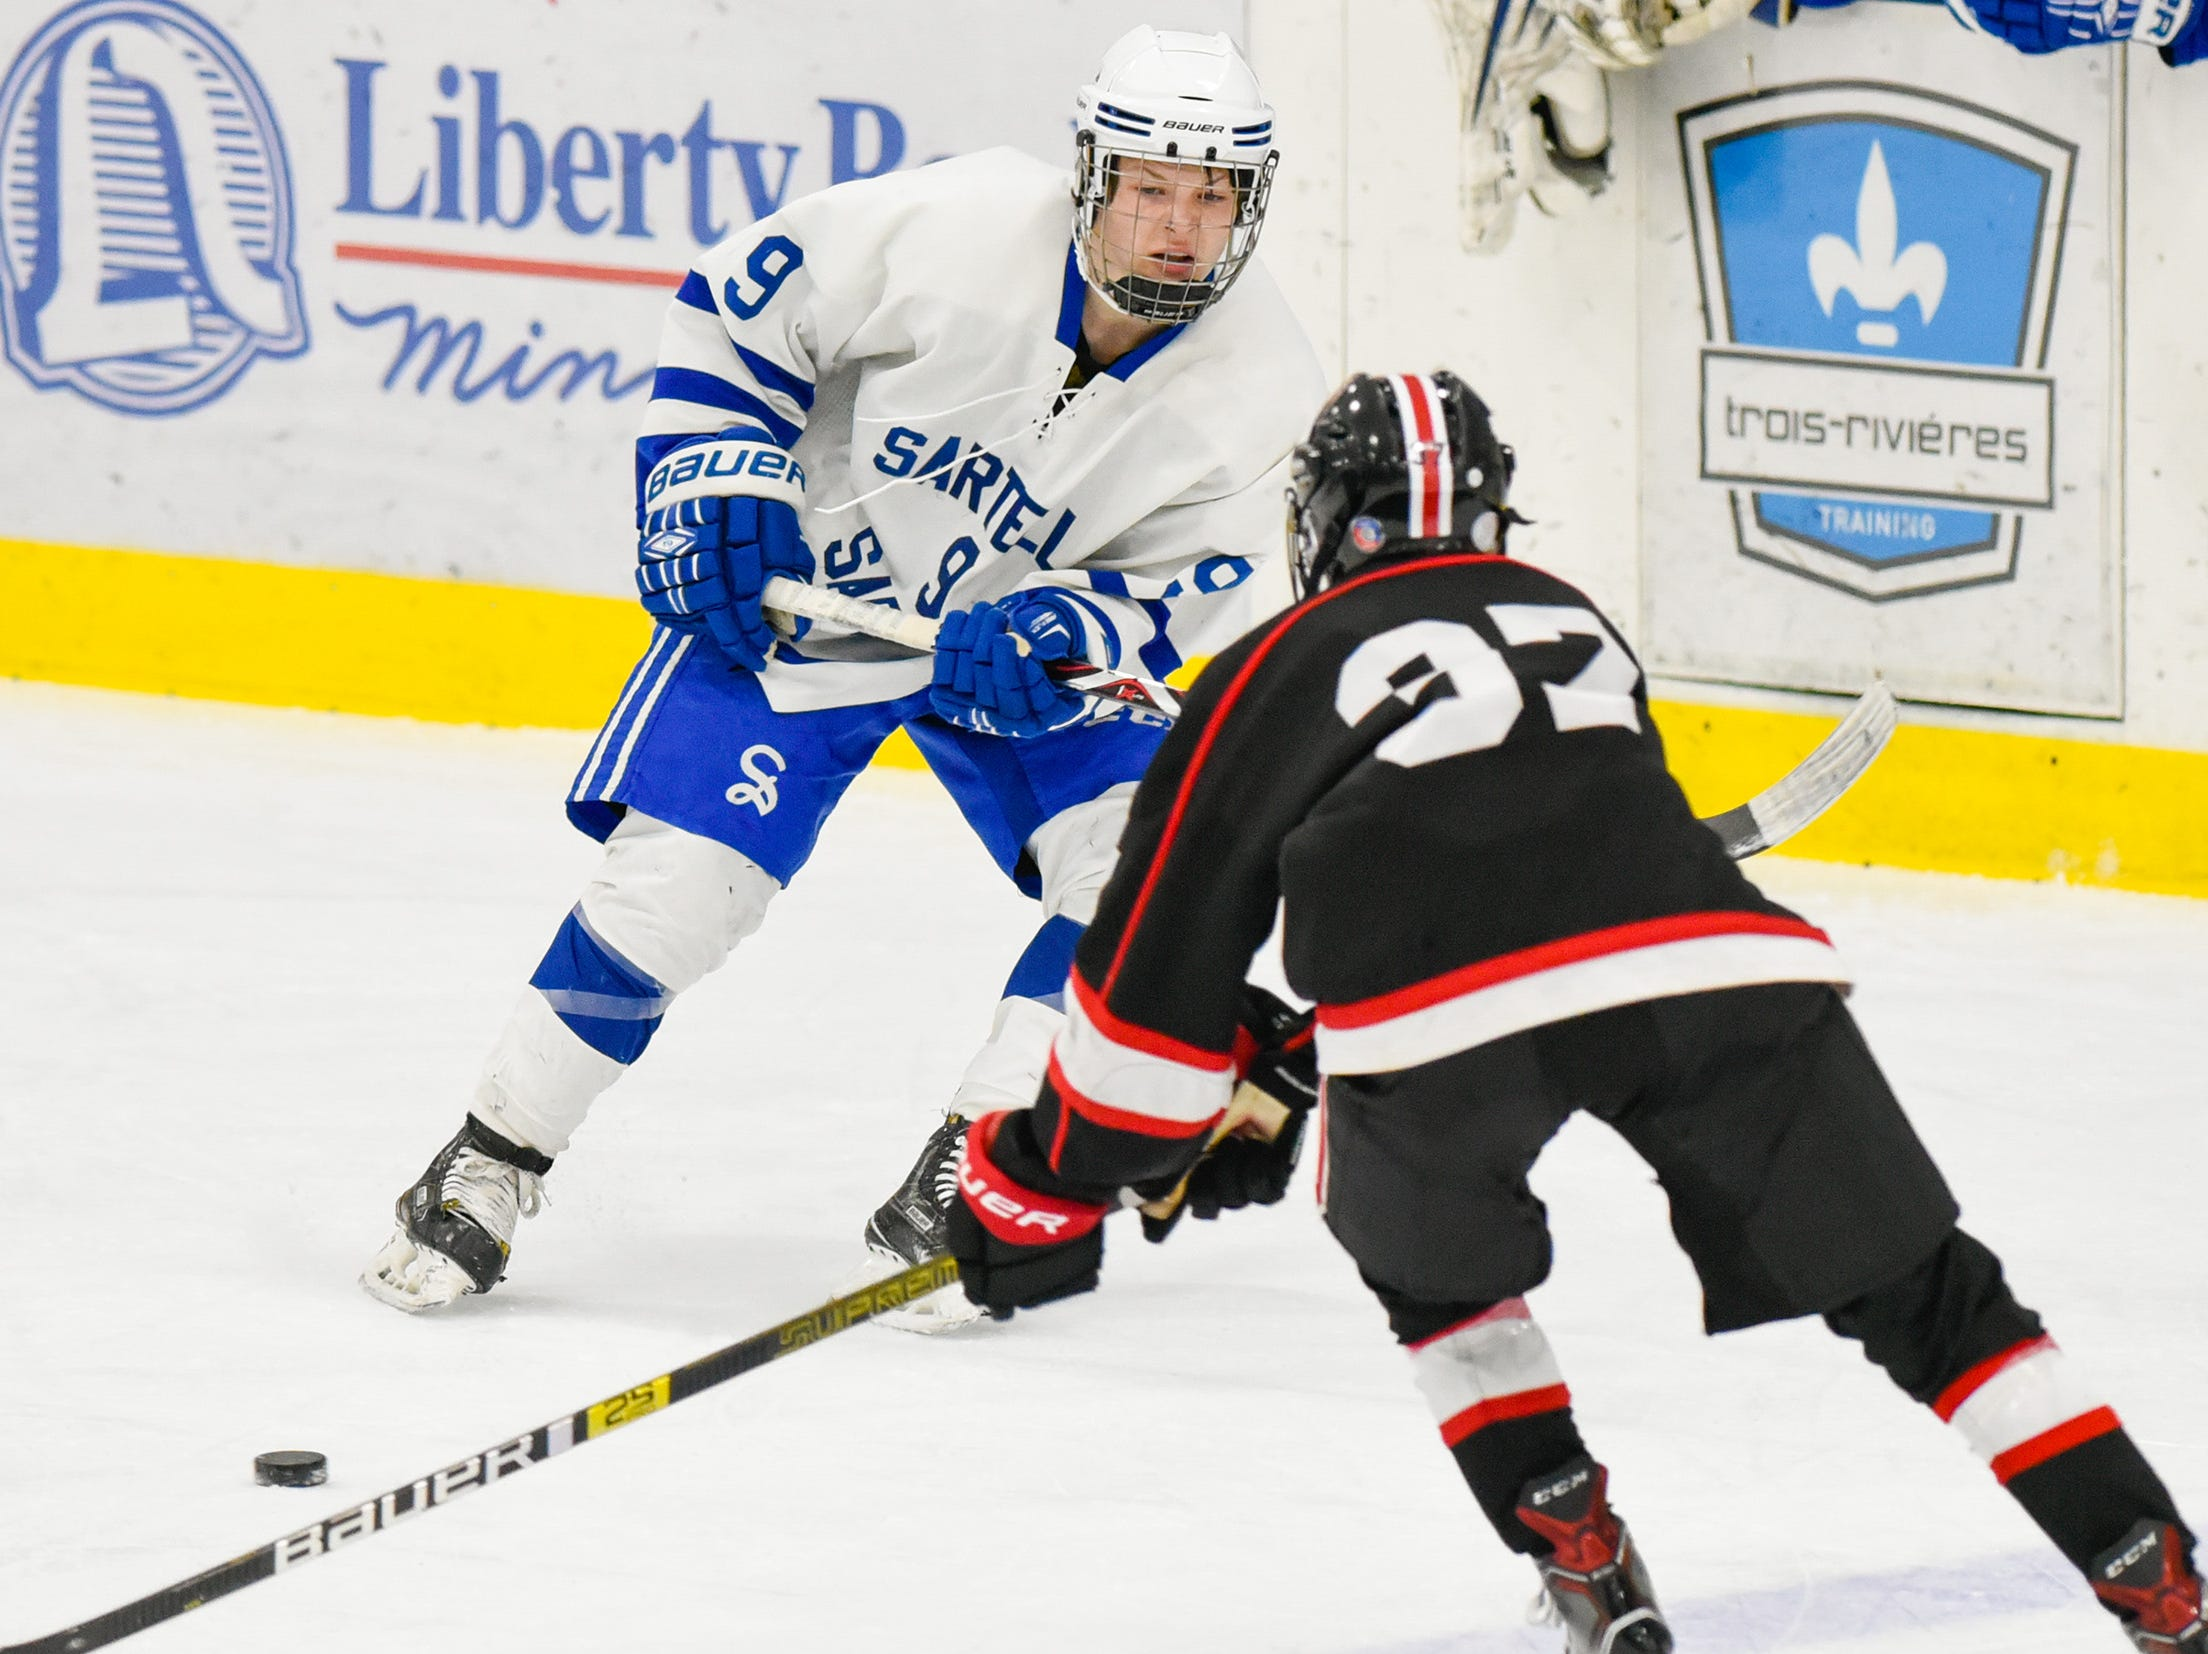 Sartell's Hayden Walters passes the puck past St. Cloud's Luke Johnson during the first period Tuesday, Dec. 18, at the Bernick's Arena in Sartell.